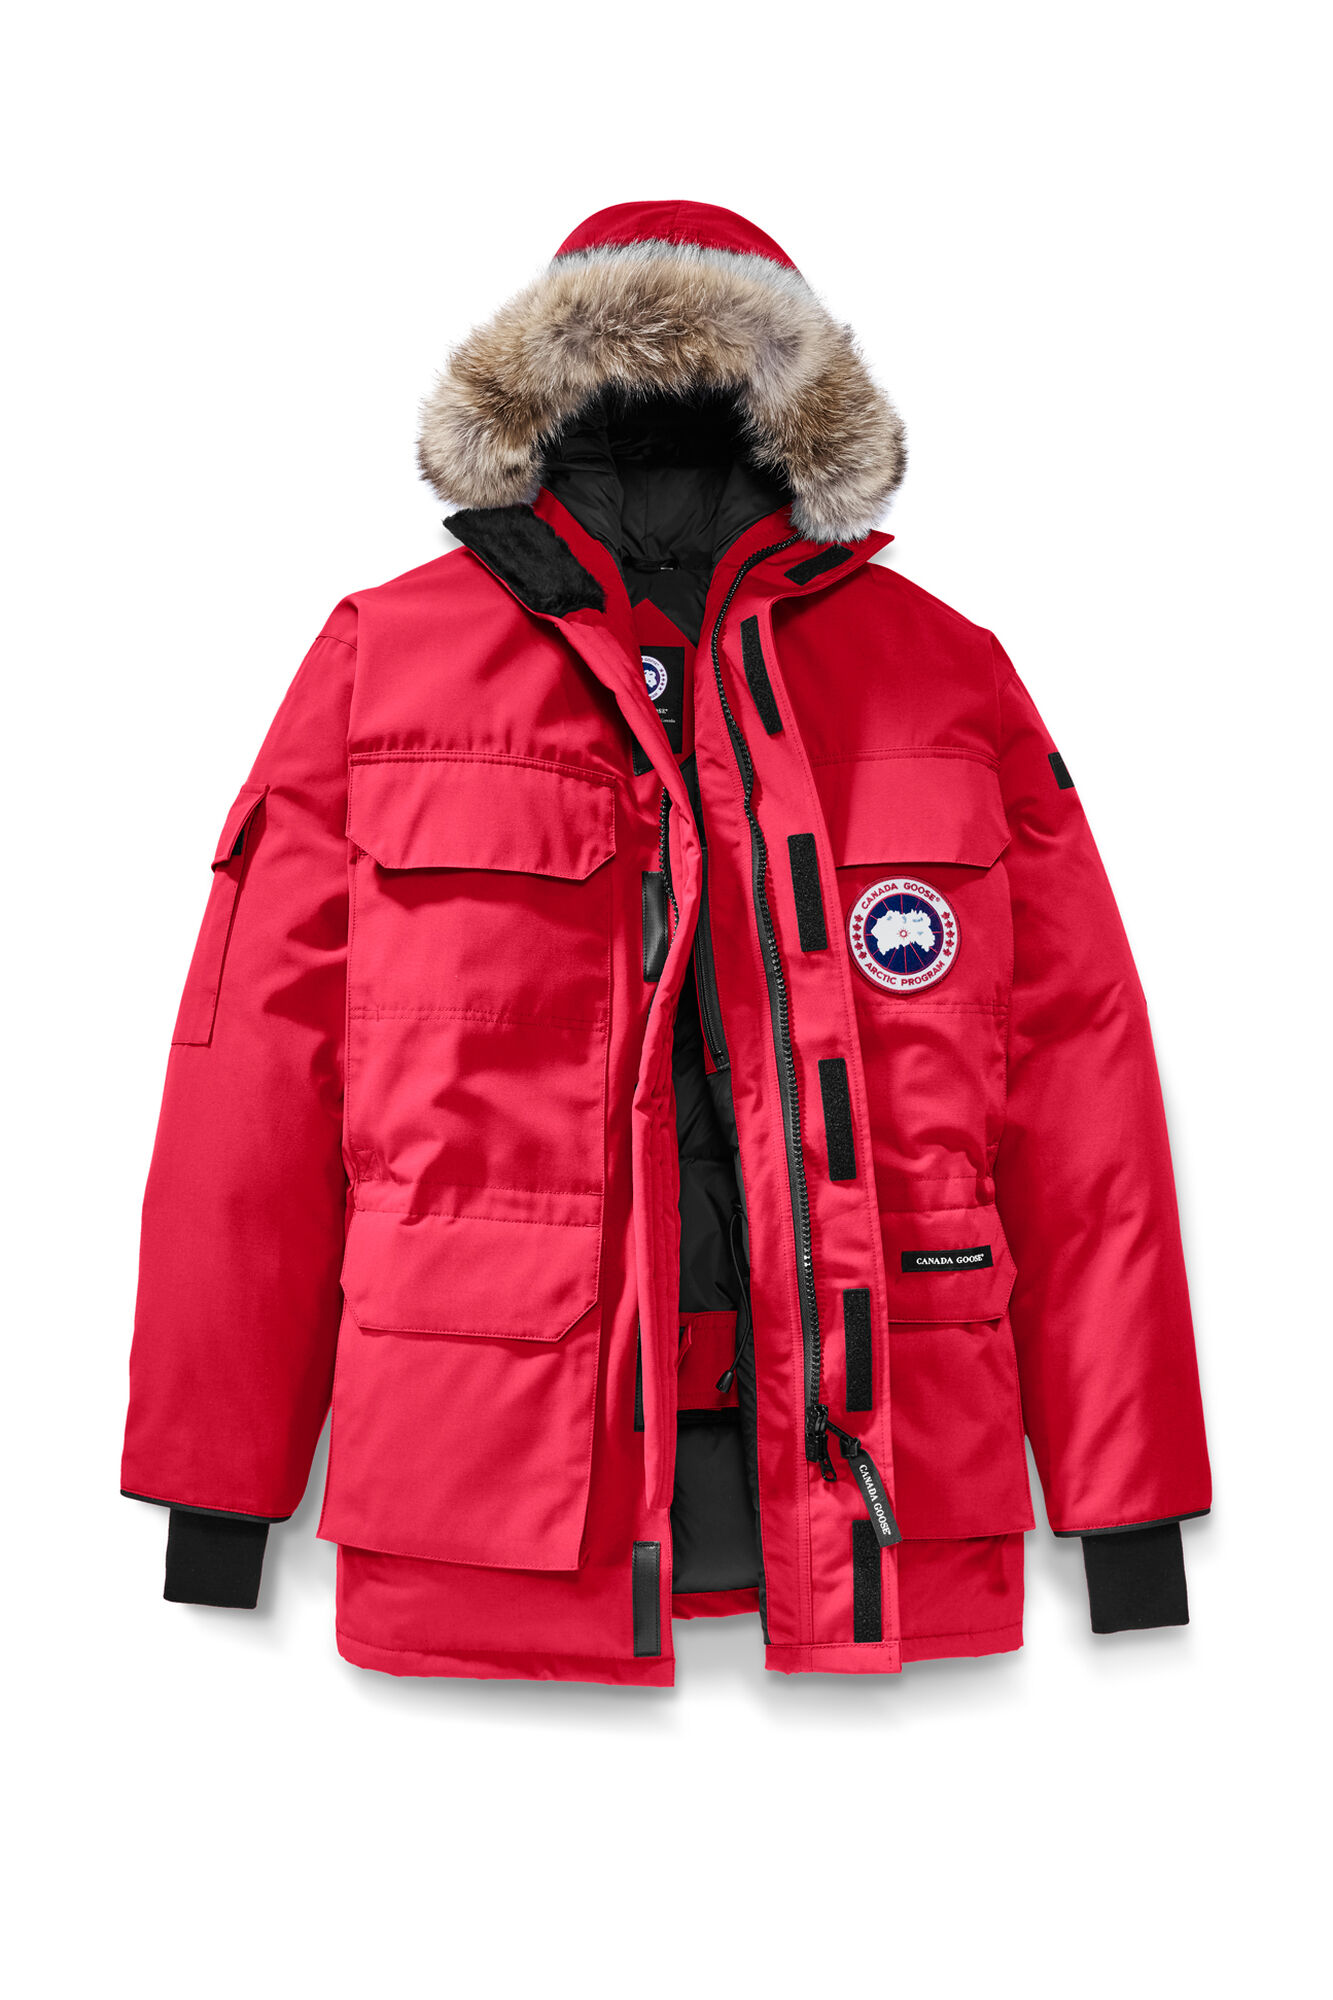 Canada Goose kids online price - Men's Arctic Program Expedition Parka | Canada Goose?